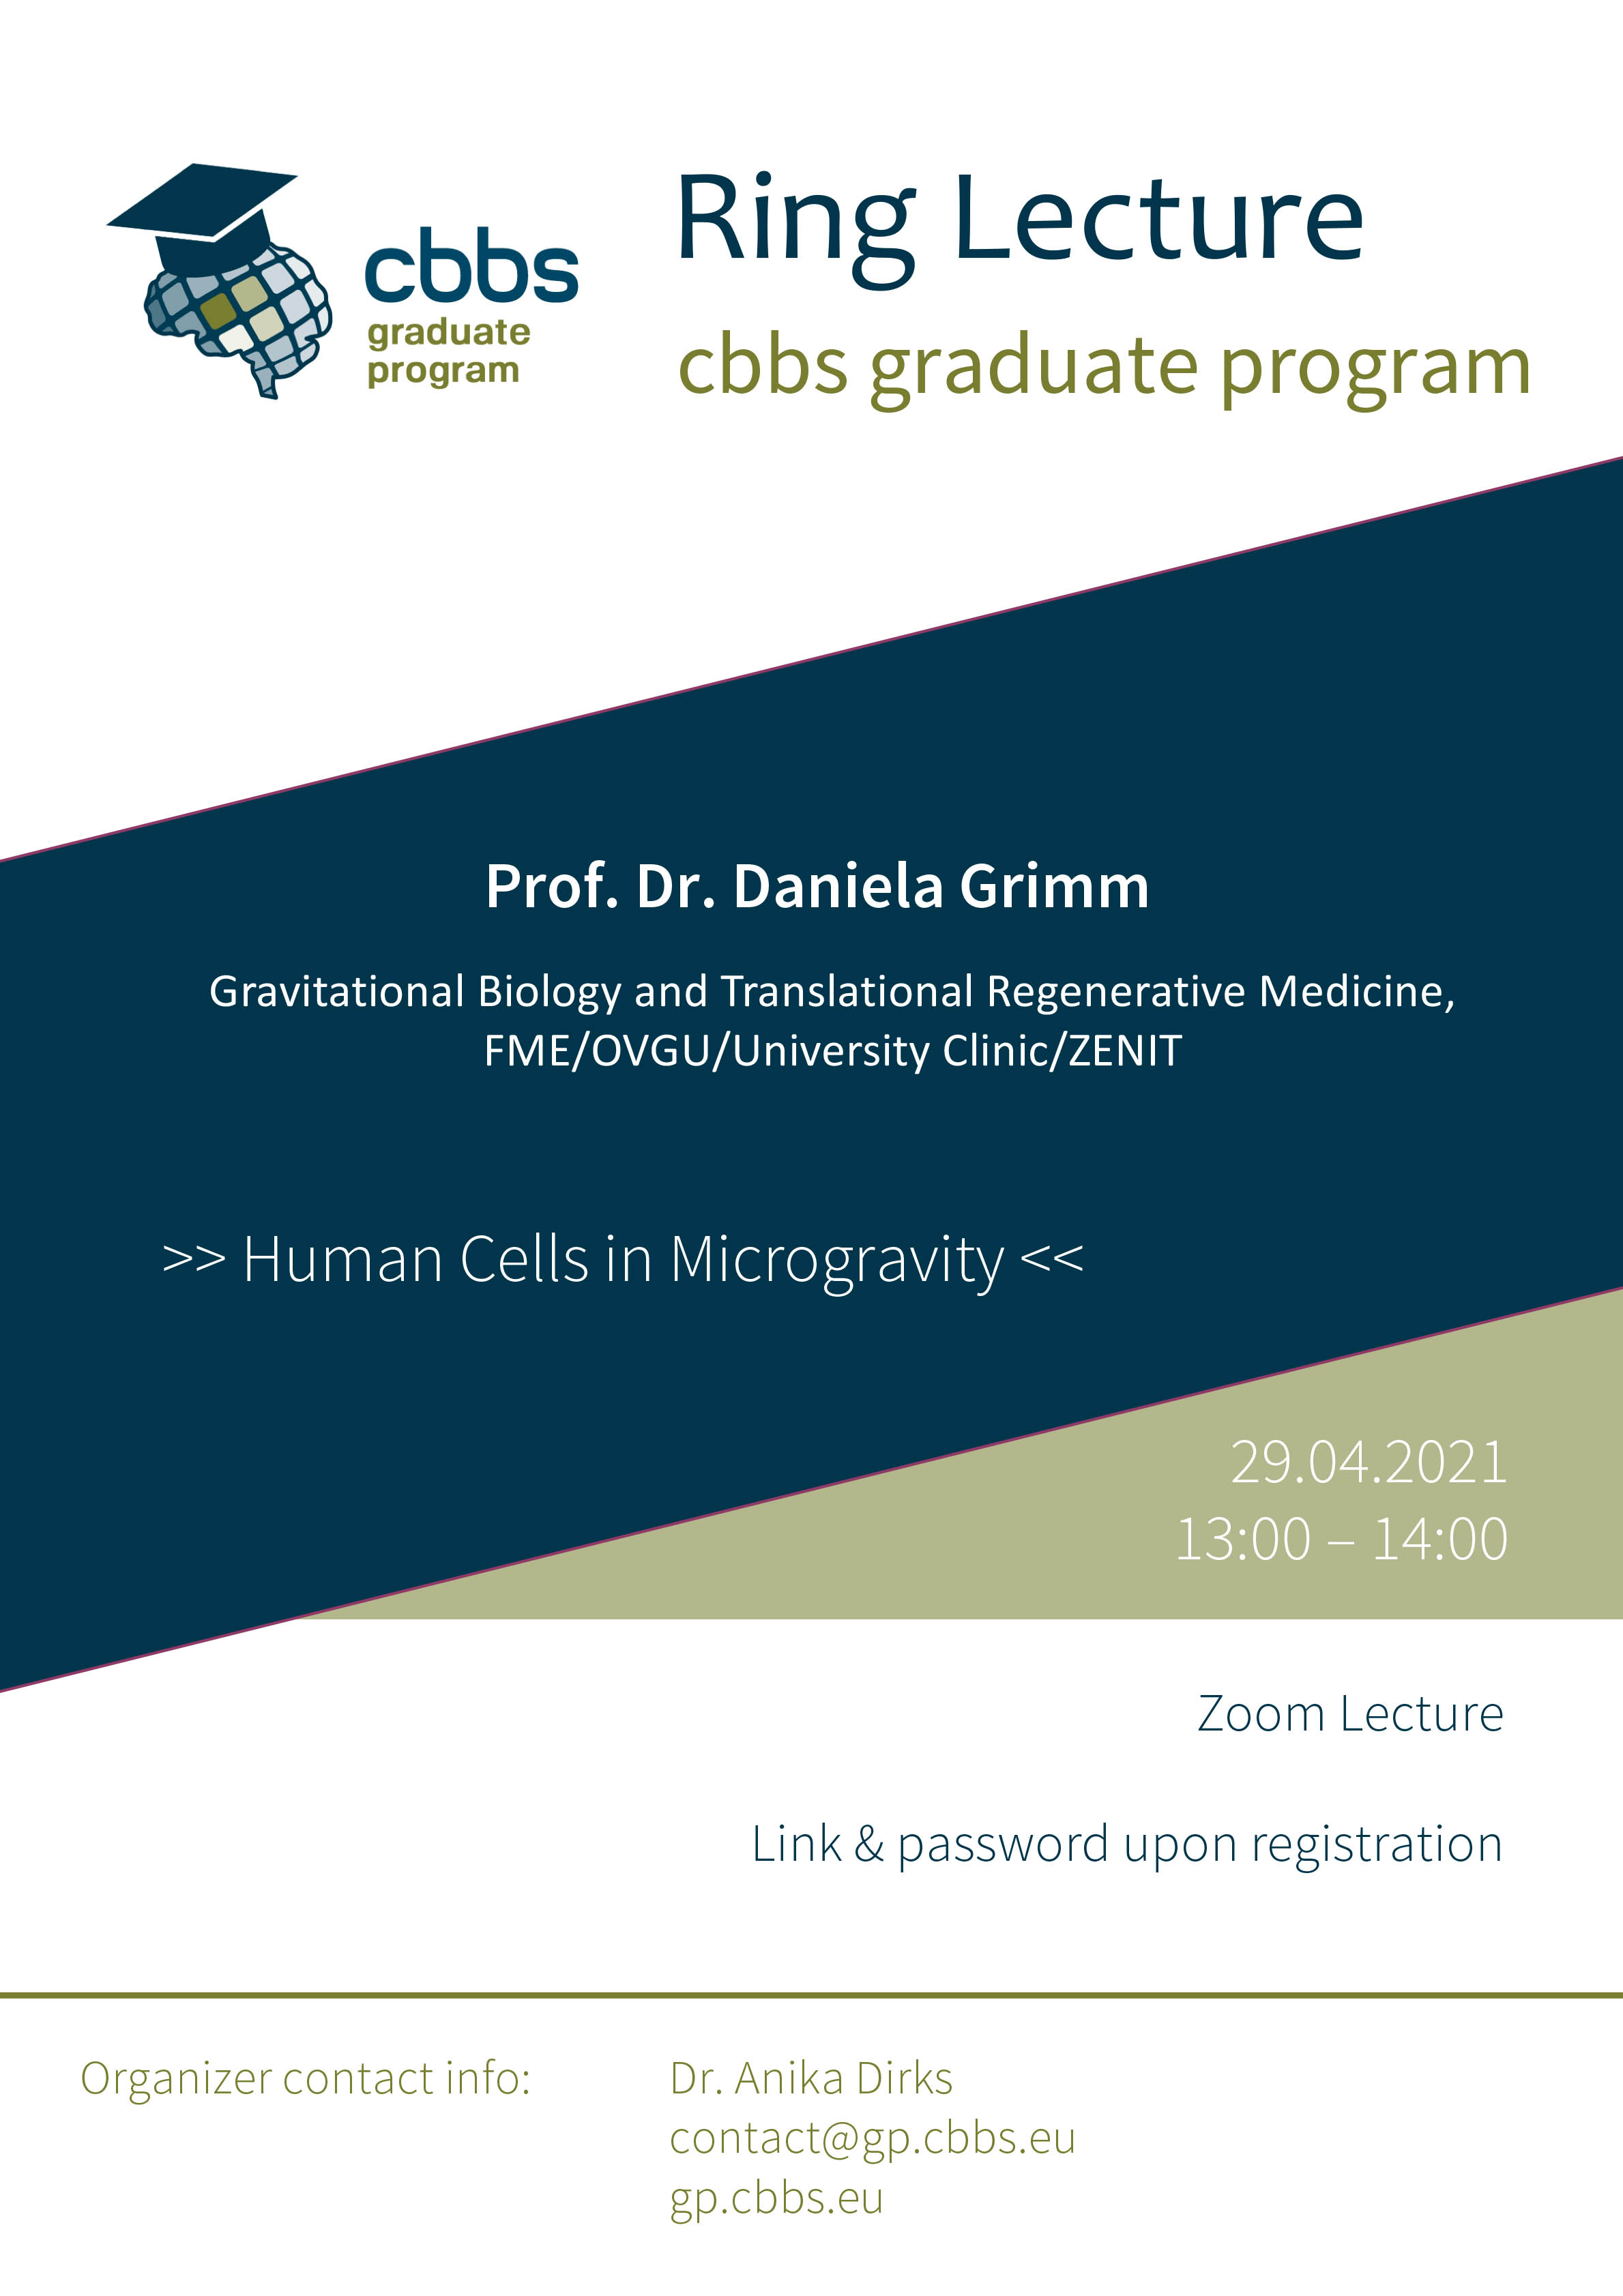 CBBS GP Ringlecture: Human Cells in Microgravity @ Zoom